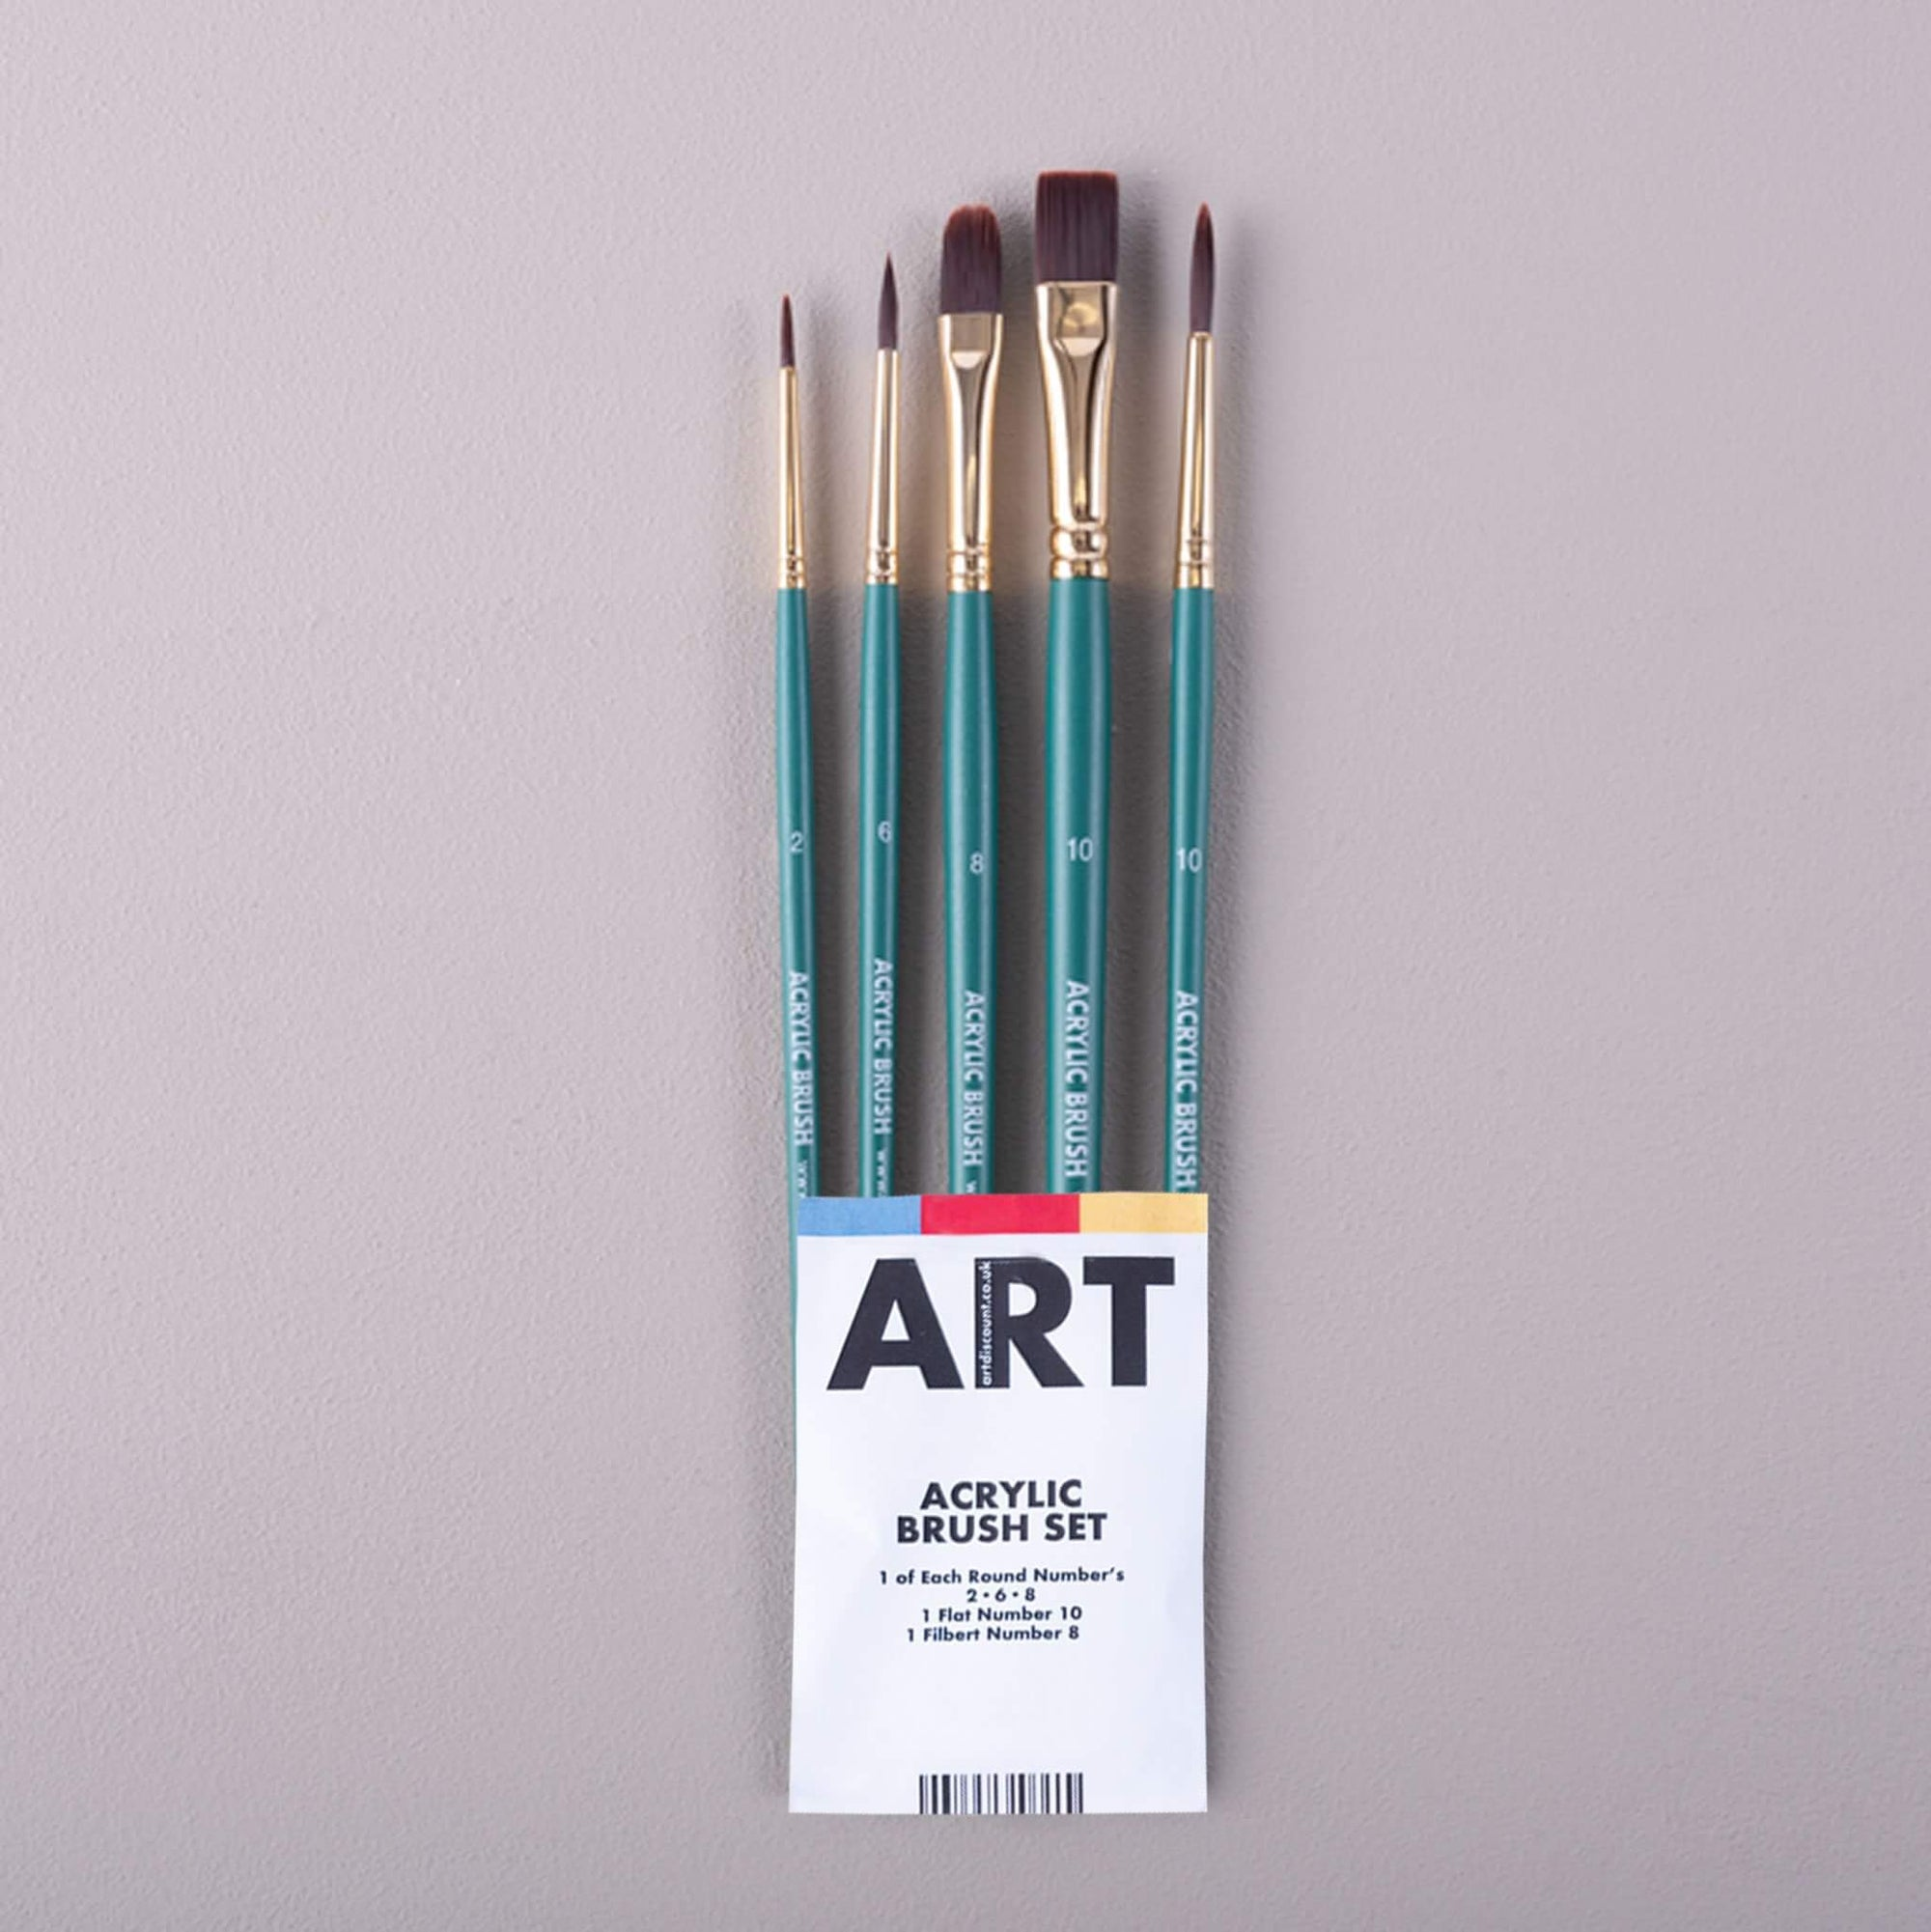 ARTdiscount SAMPLE Acrylic Brush Set of 5 Brushes